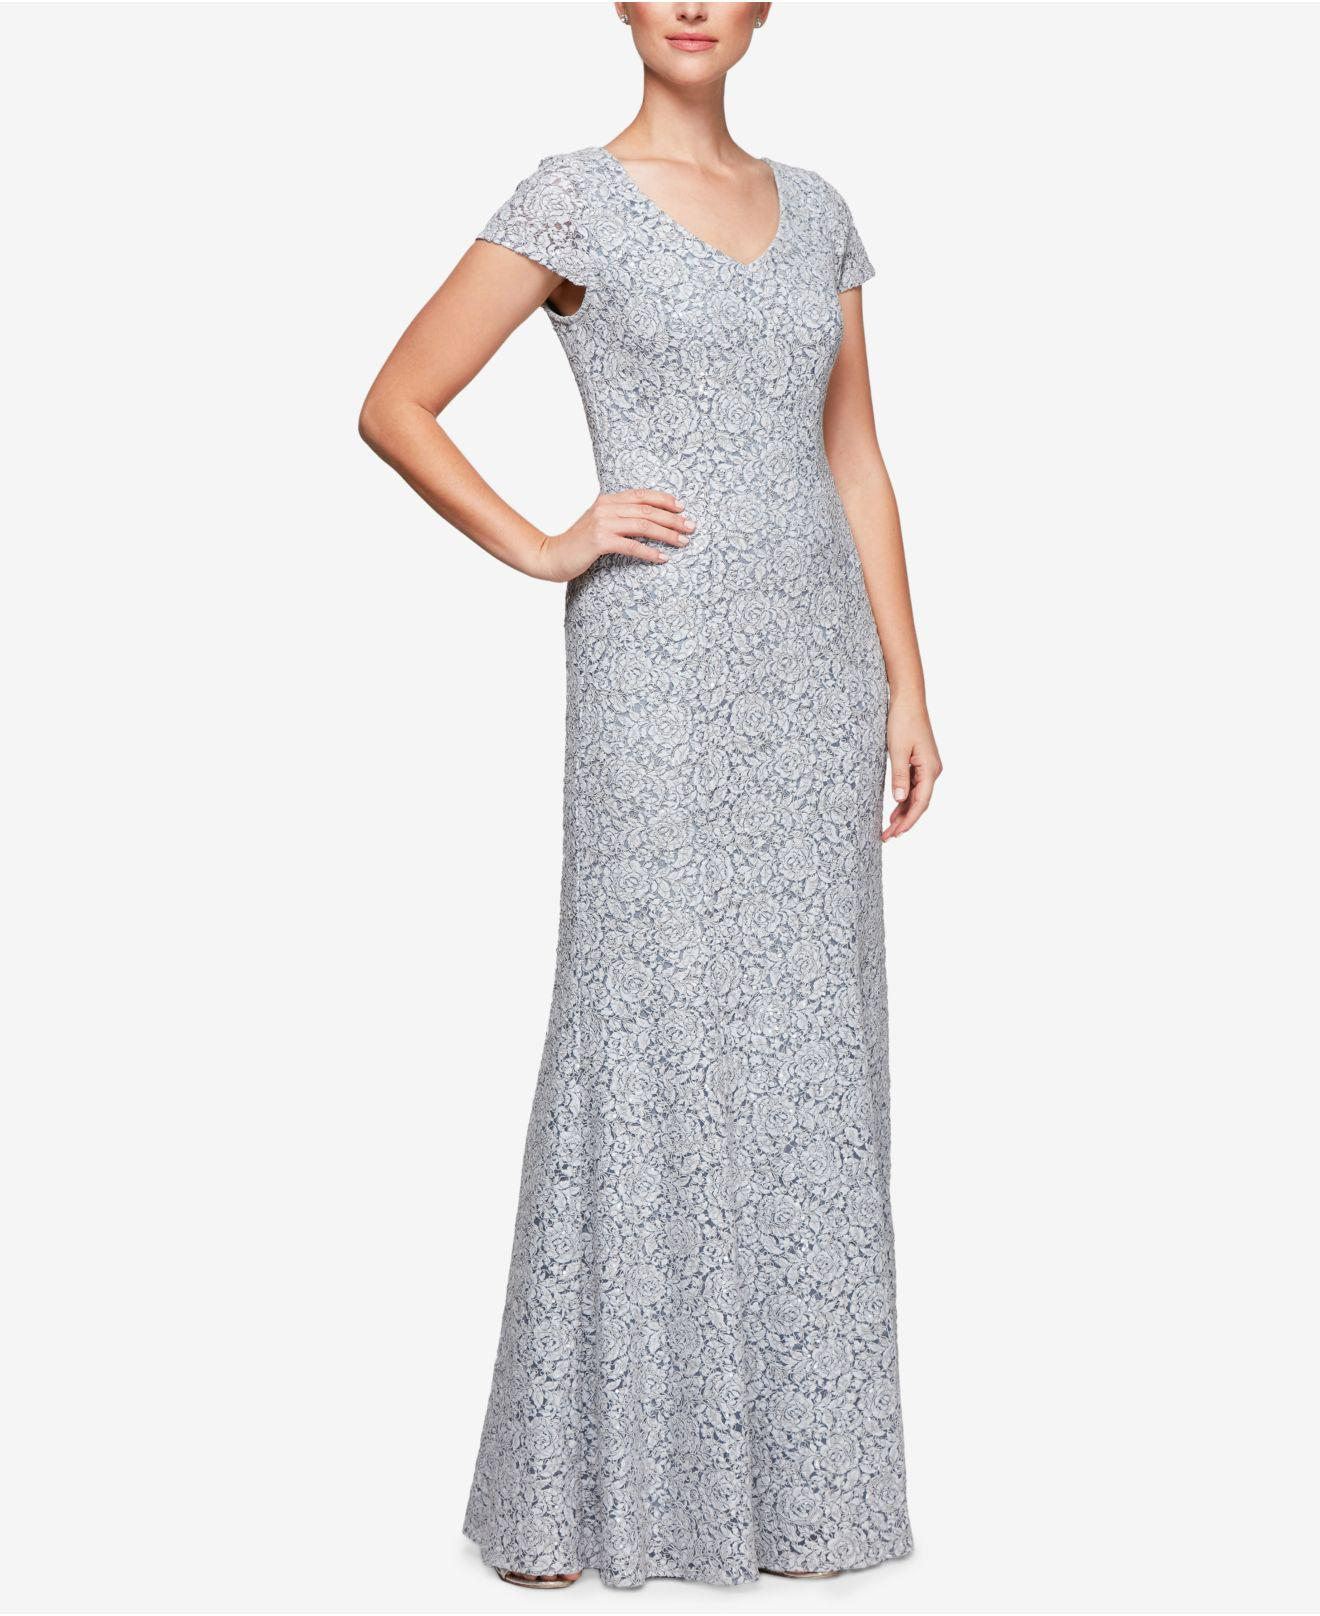 Lyst - Alex Evenings Petite Lace Cap-sleeve Gown in Gray